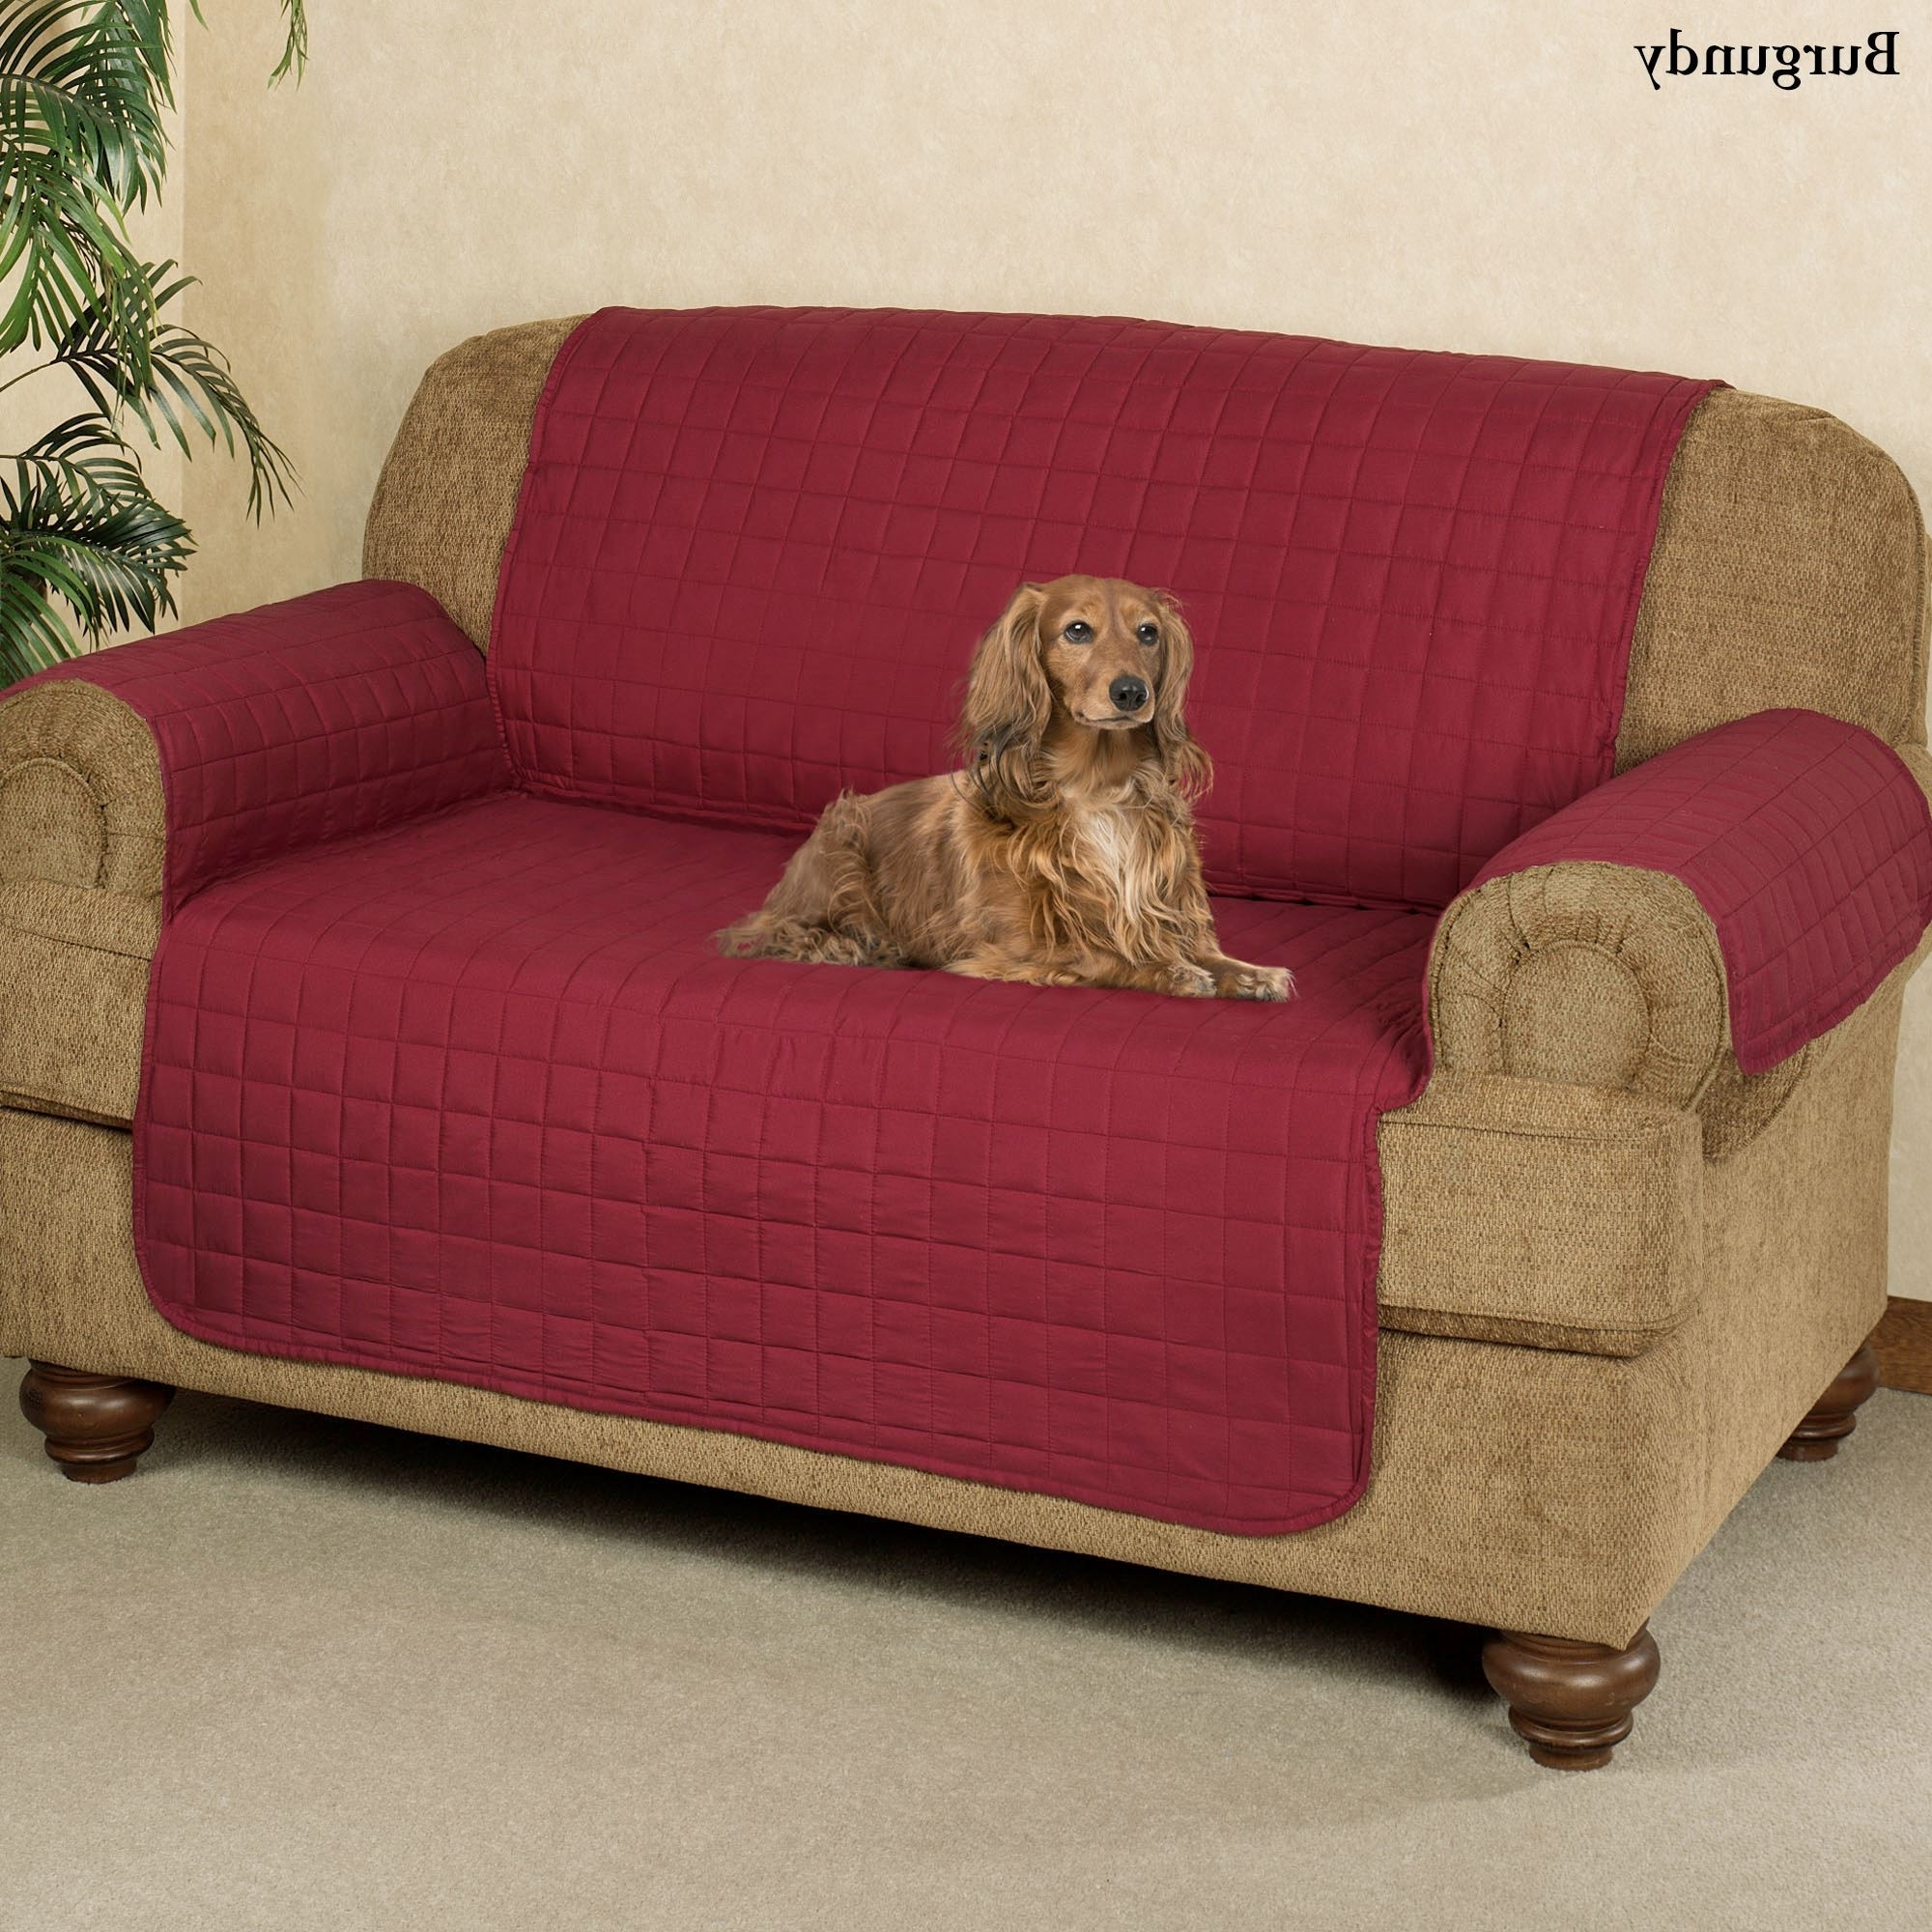 Microfiber Pet Furniture Covers With Tuck In Flaps Pertaining To 2017 Lazy Sofa Chairs (View 10 of 15)